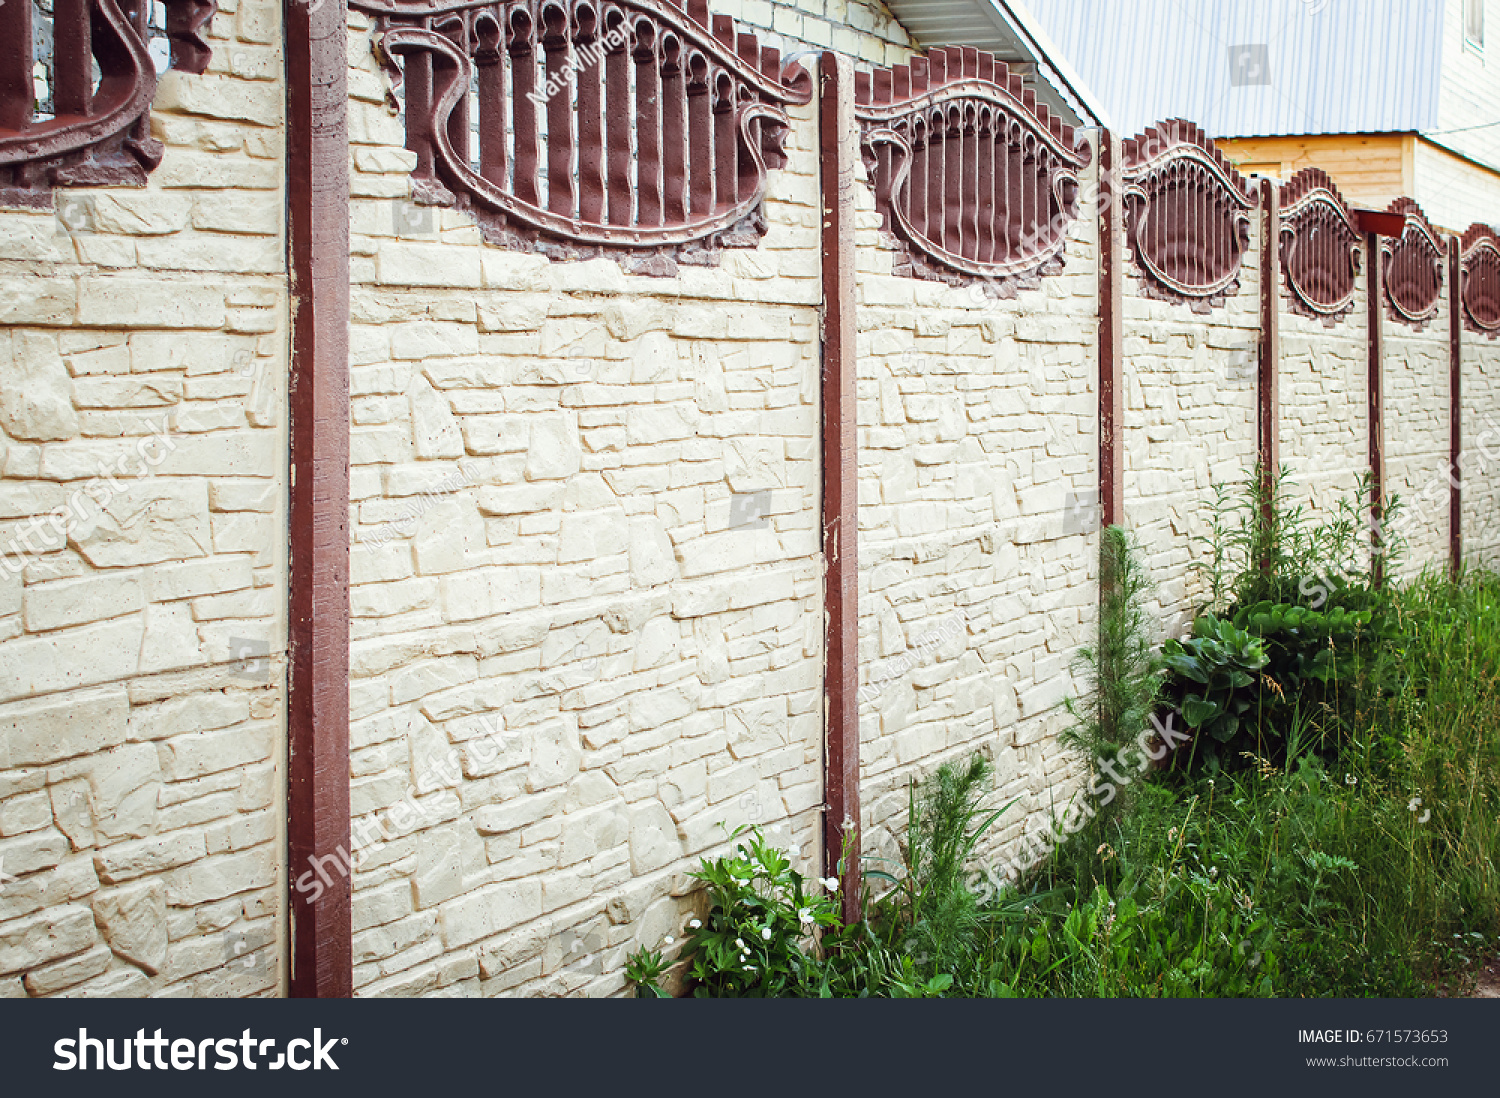 Beautiful Concrete Fence Modern Style Design Stock Photo (Safe to ...